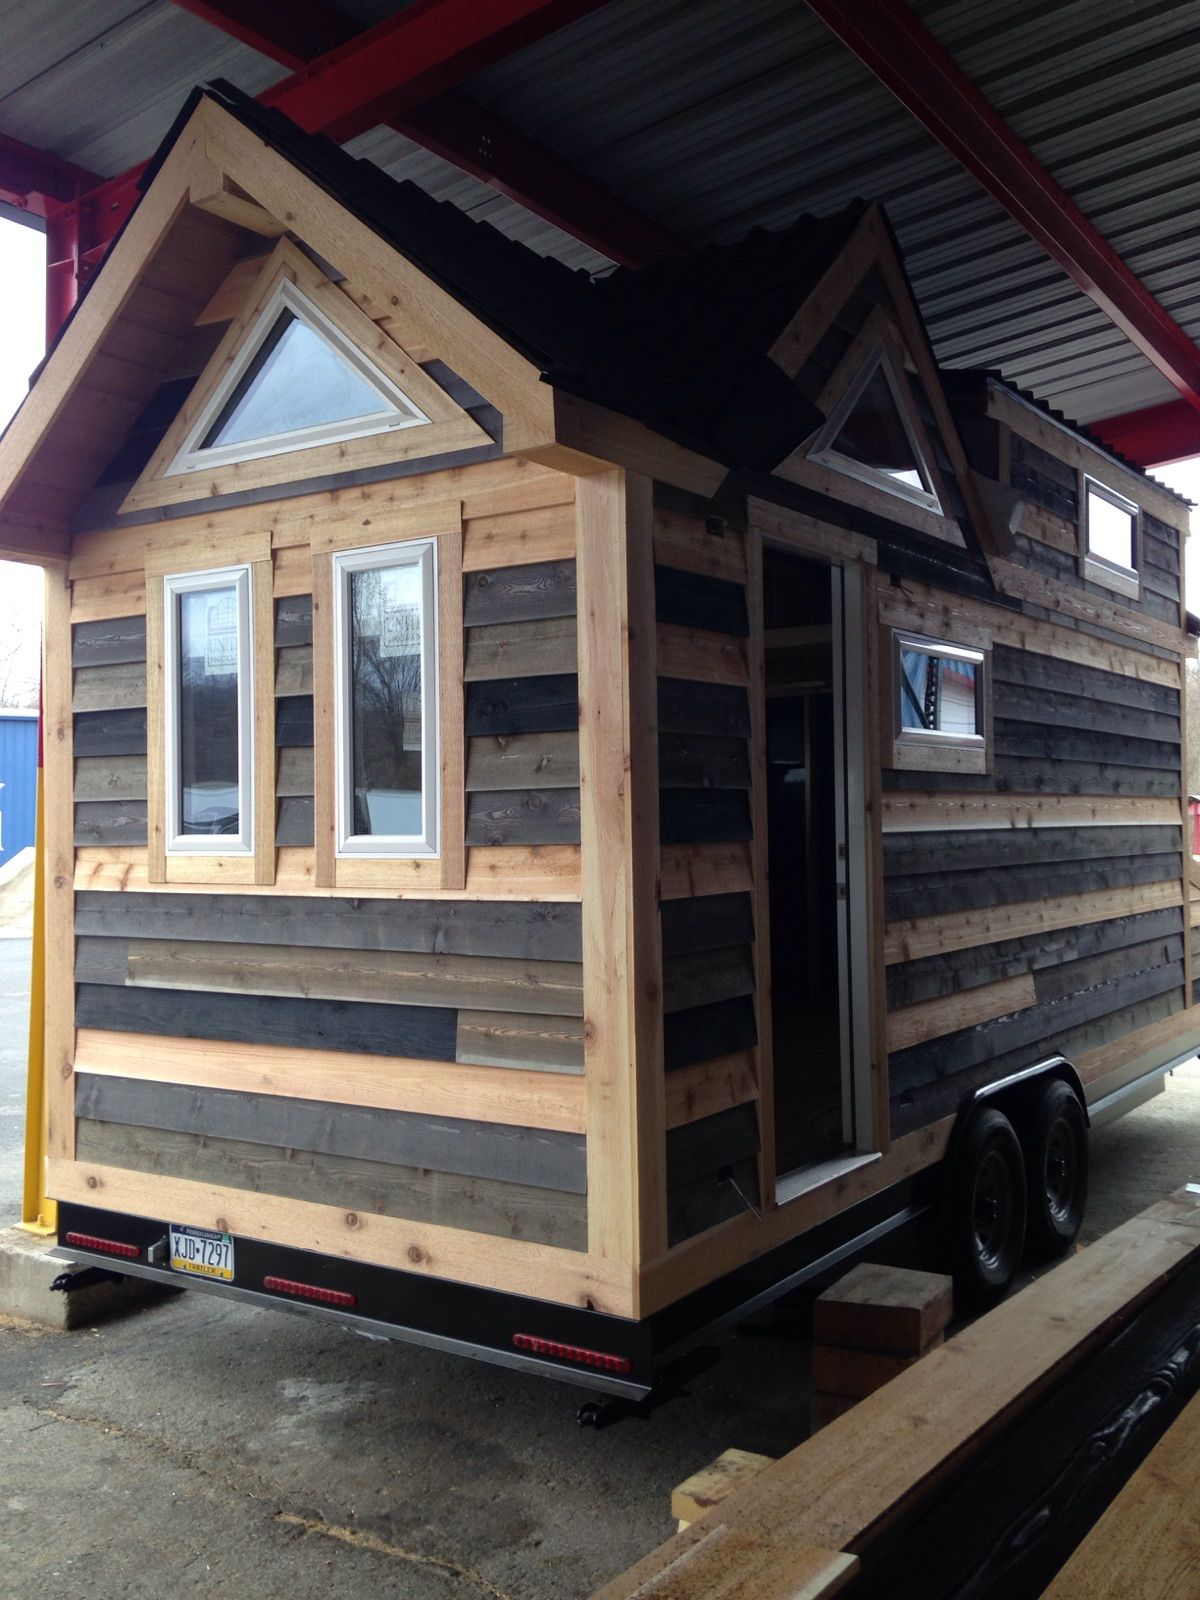 84 Lumber Launches Geous Tiny Homes That You Can Or Build Yourself Inhabitat Green Design Innovation Ture Building